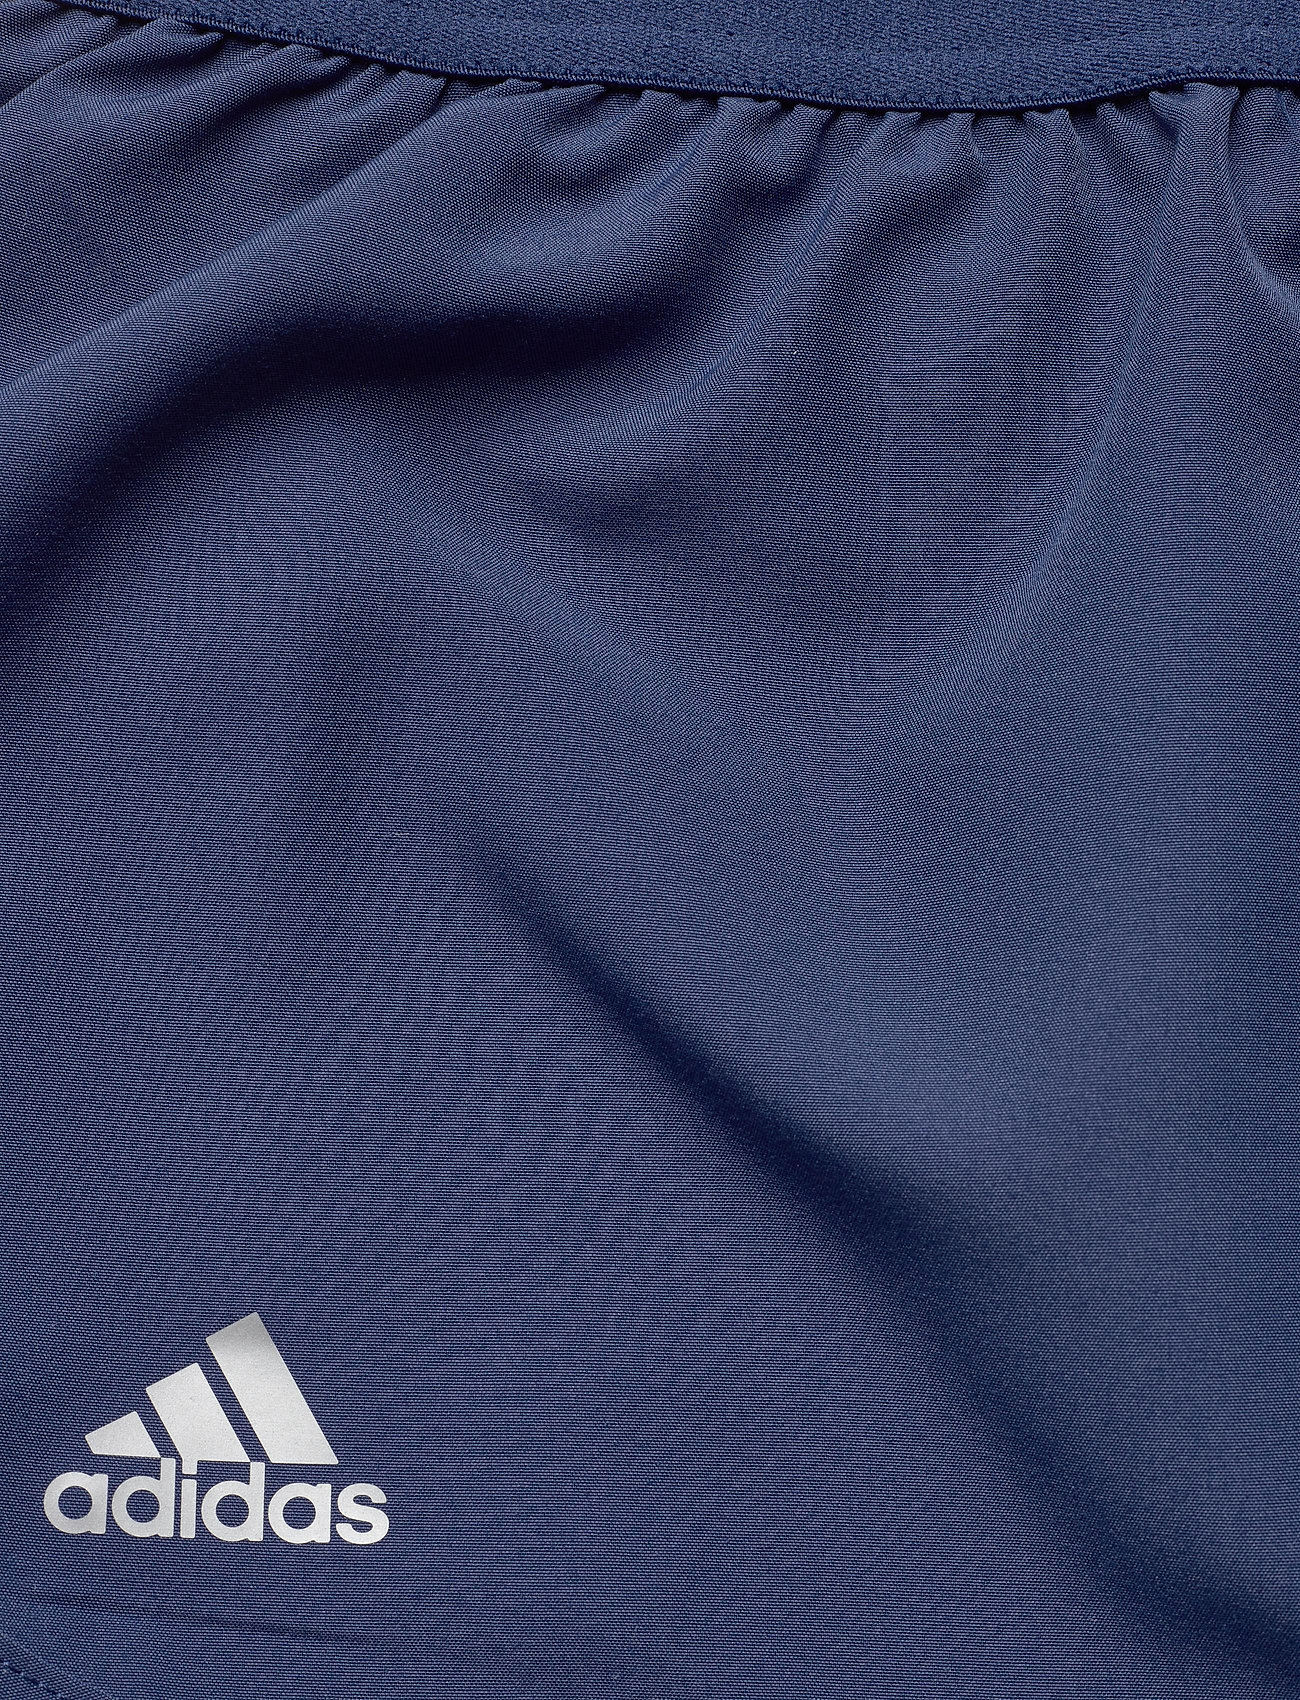 Club Short (Tech Indig) (379 kr) - adidas Tennis